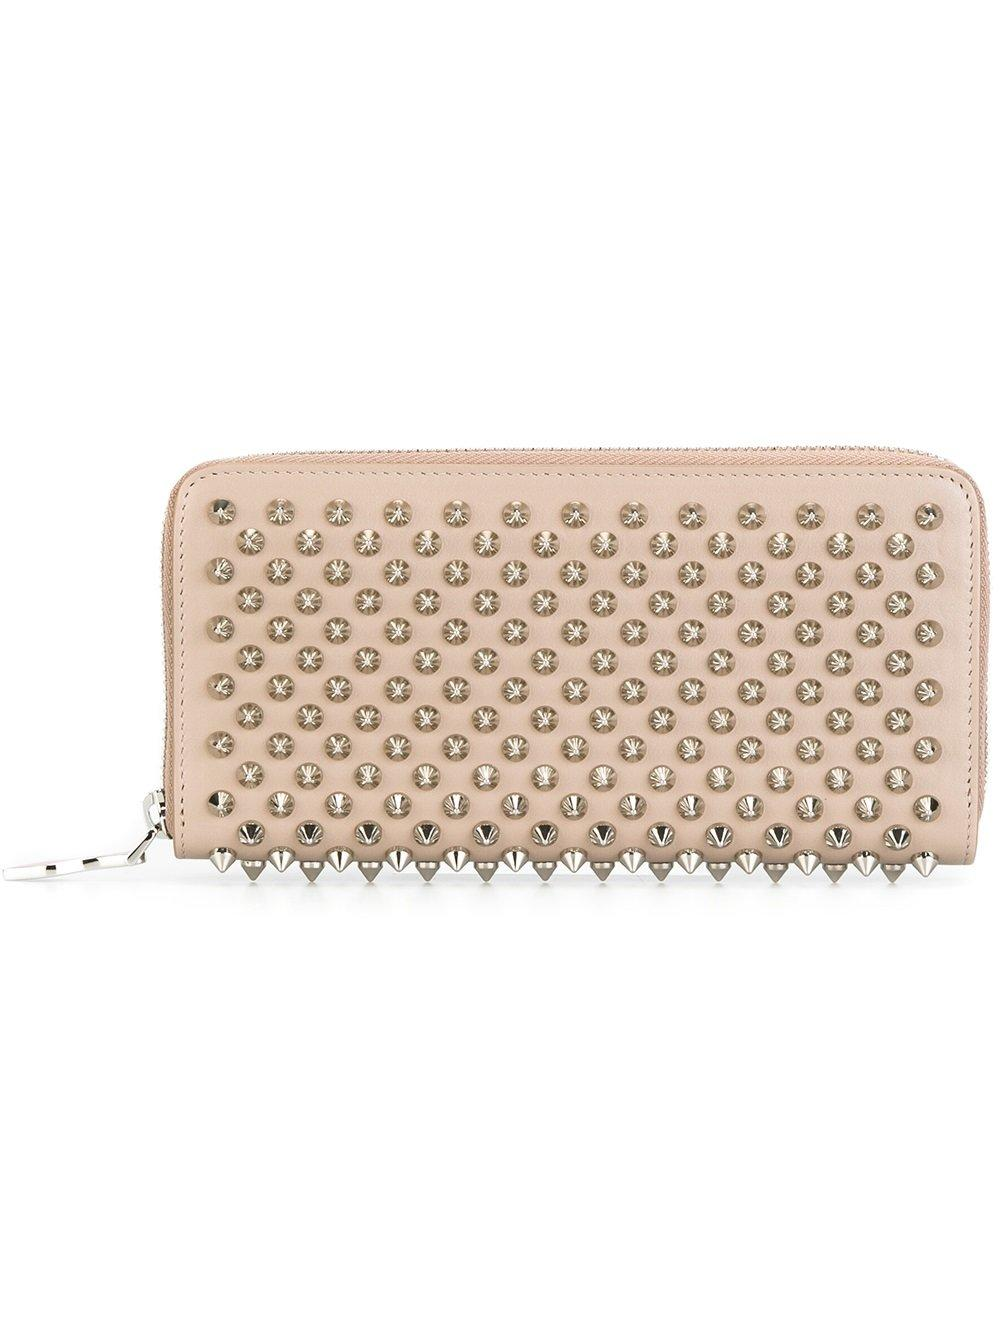 cf5e3c3df1 Lyst - Christian Louboutin Studded Wallet in Natural